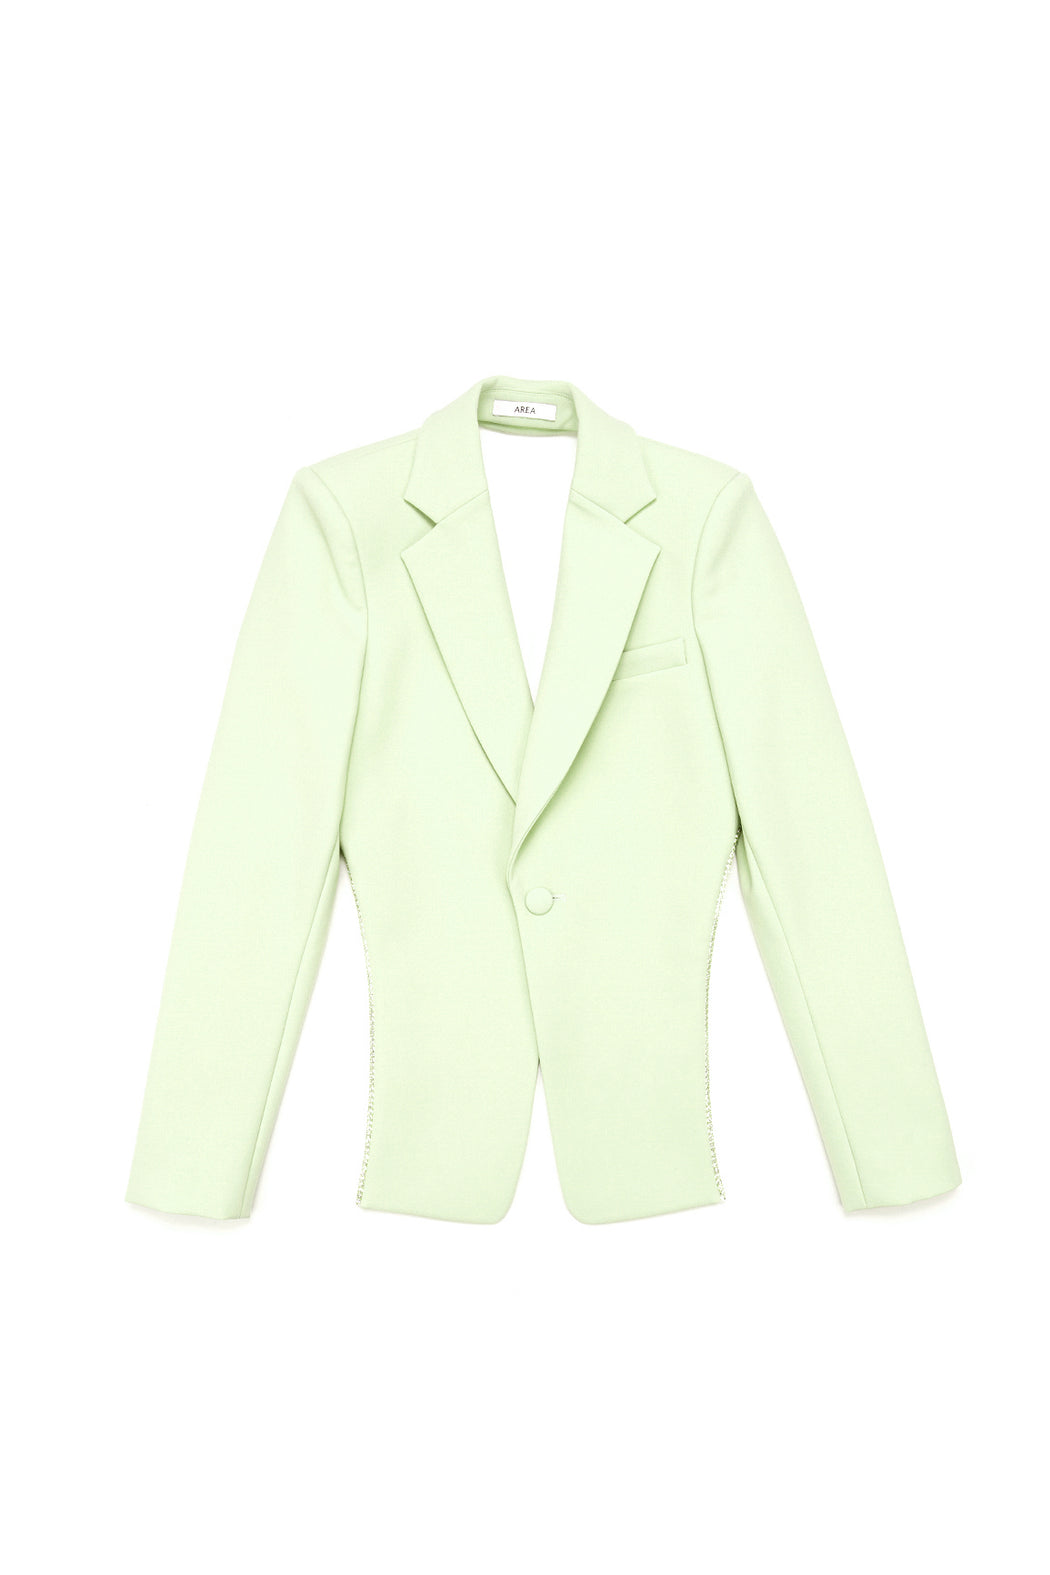 Crystal Trim Open Back Blazer - Matcha